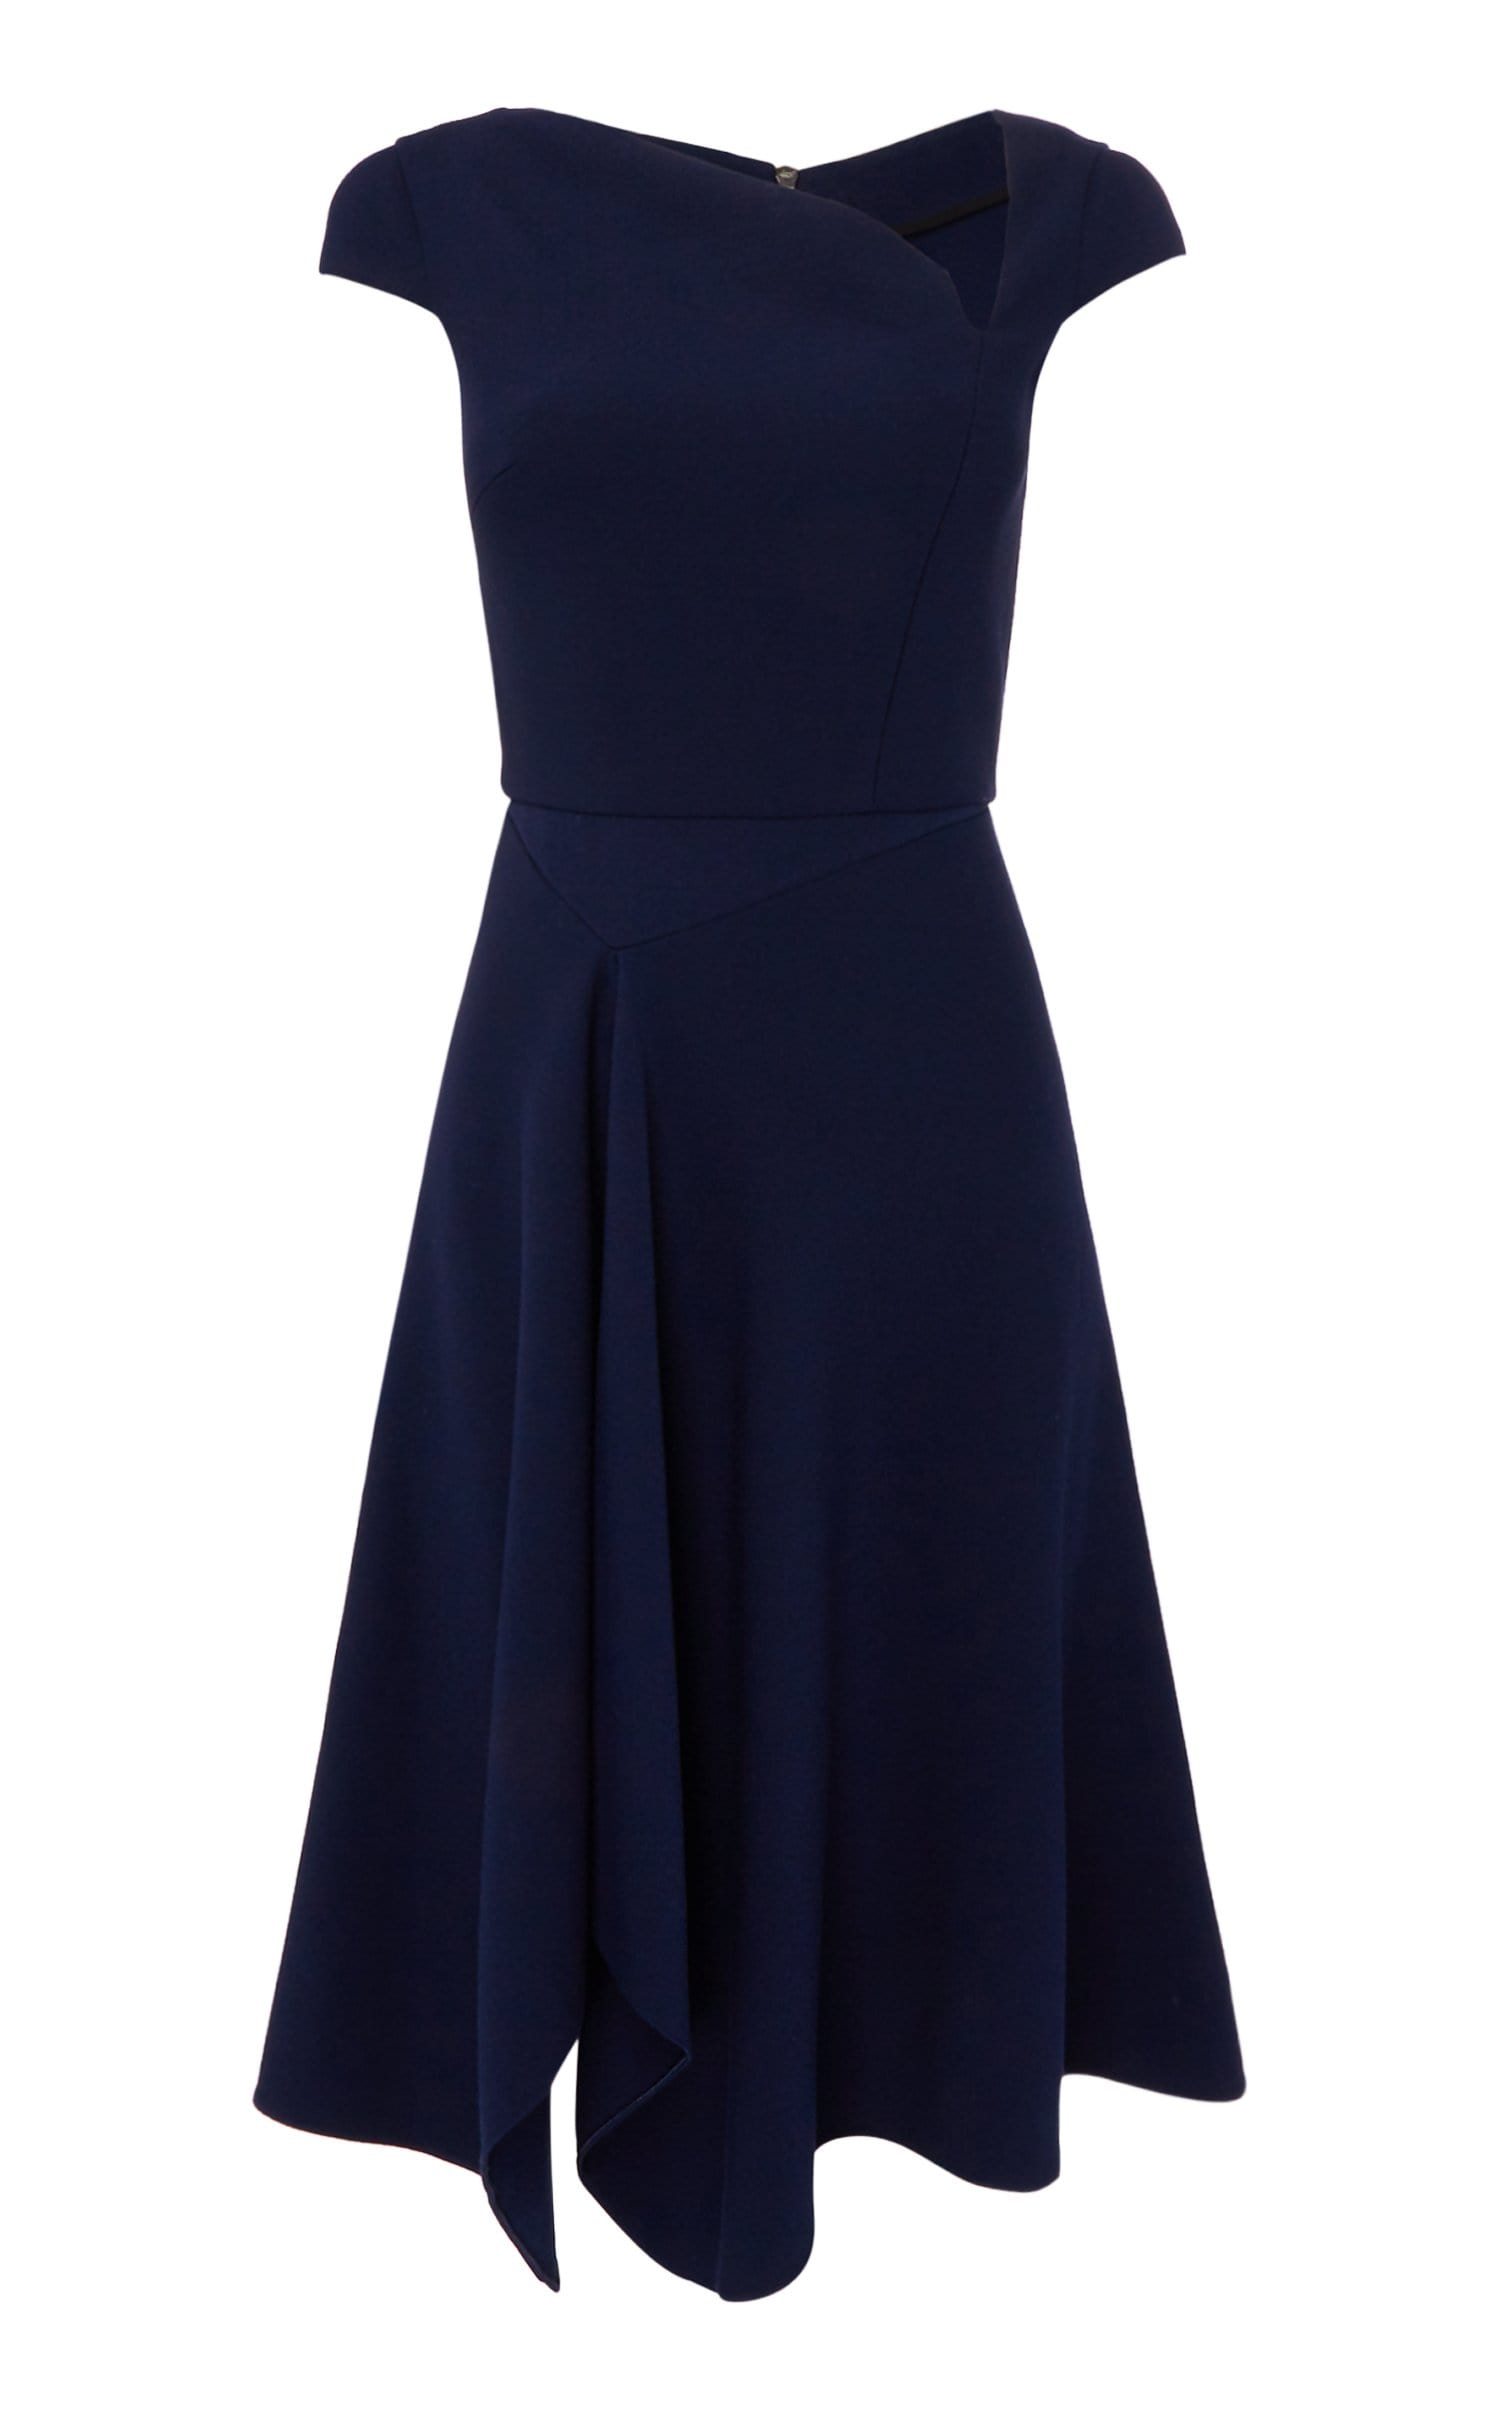 Augustus Dress In Navy from Roland Mouret